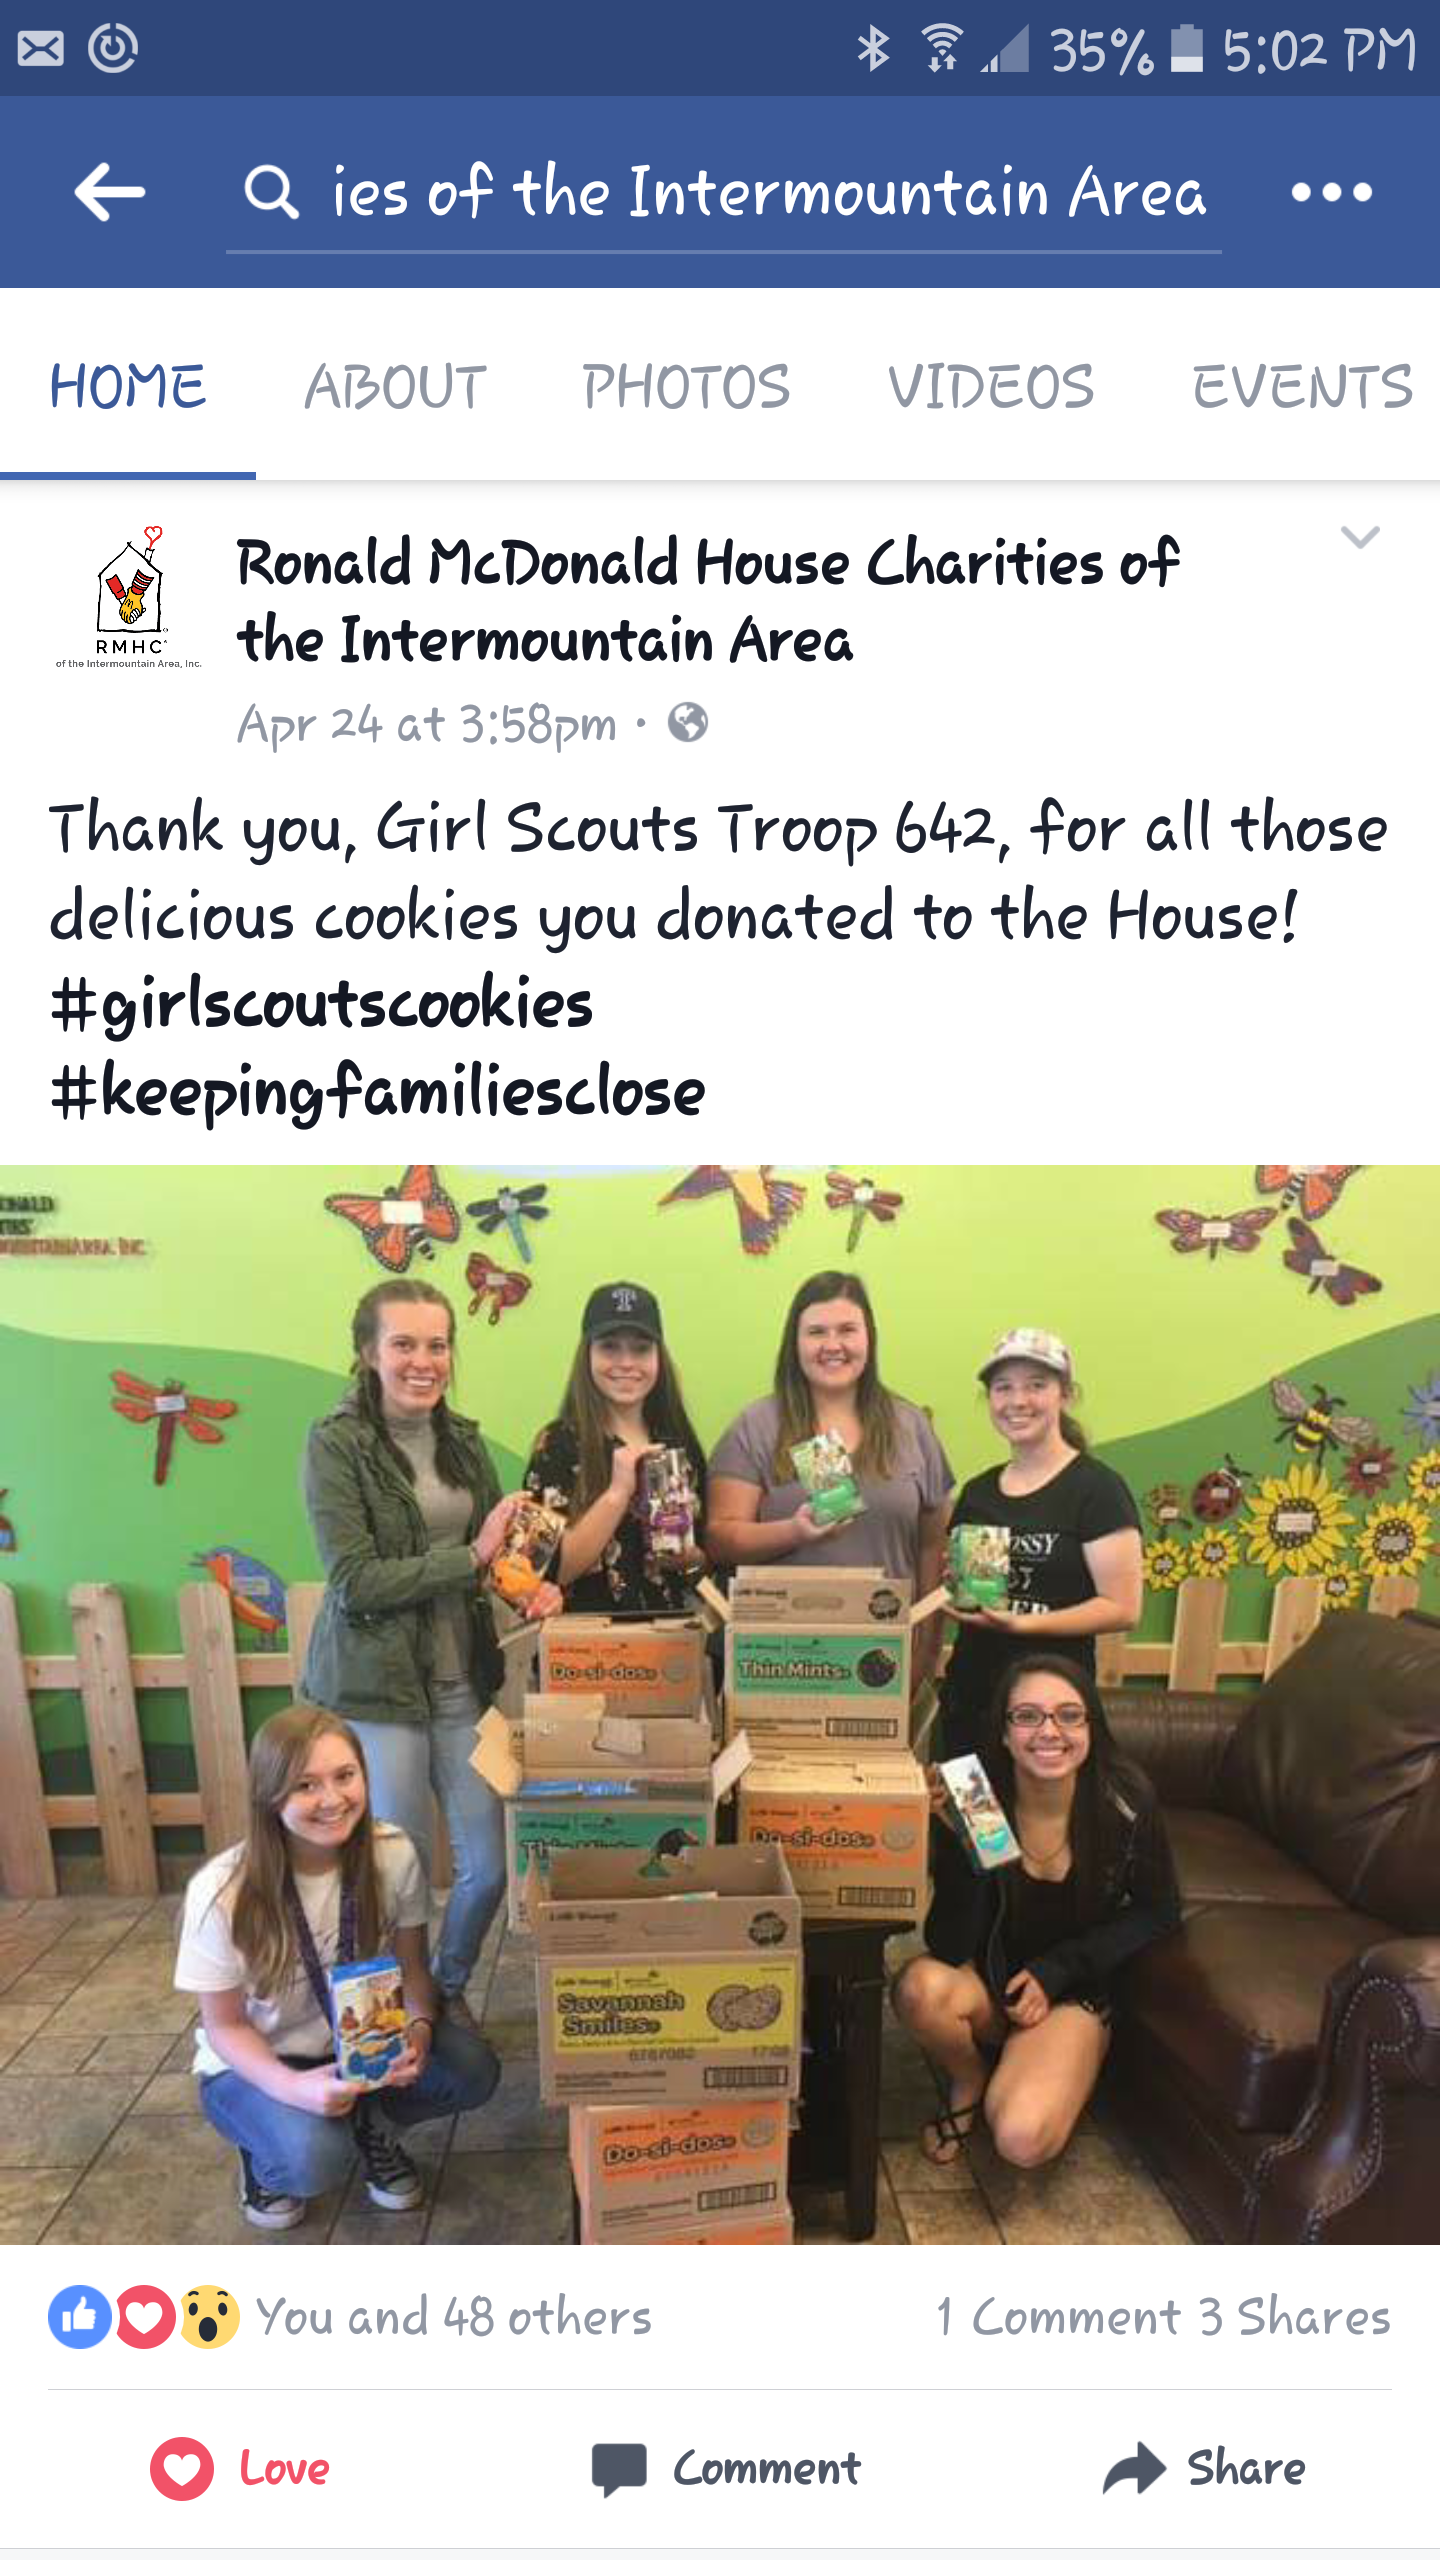 Nerea from Spain volunteered to help the Girl Scouts collect donations. She sold cookies and collected donations for extra boxes to donate to the Ronald McDonald House Charities. They delivered 12 cases of cookies for the families staying there.